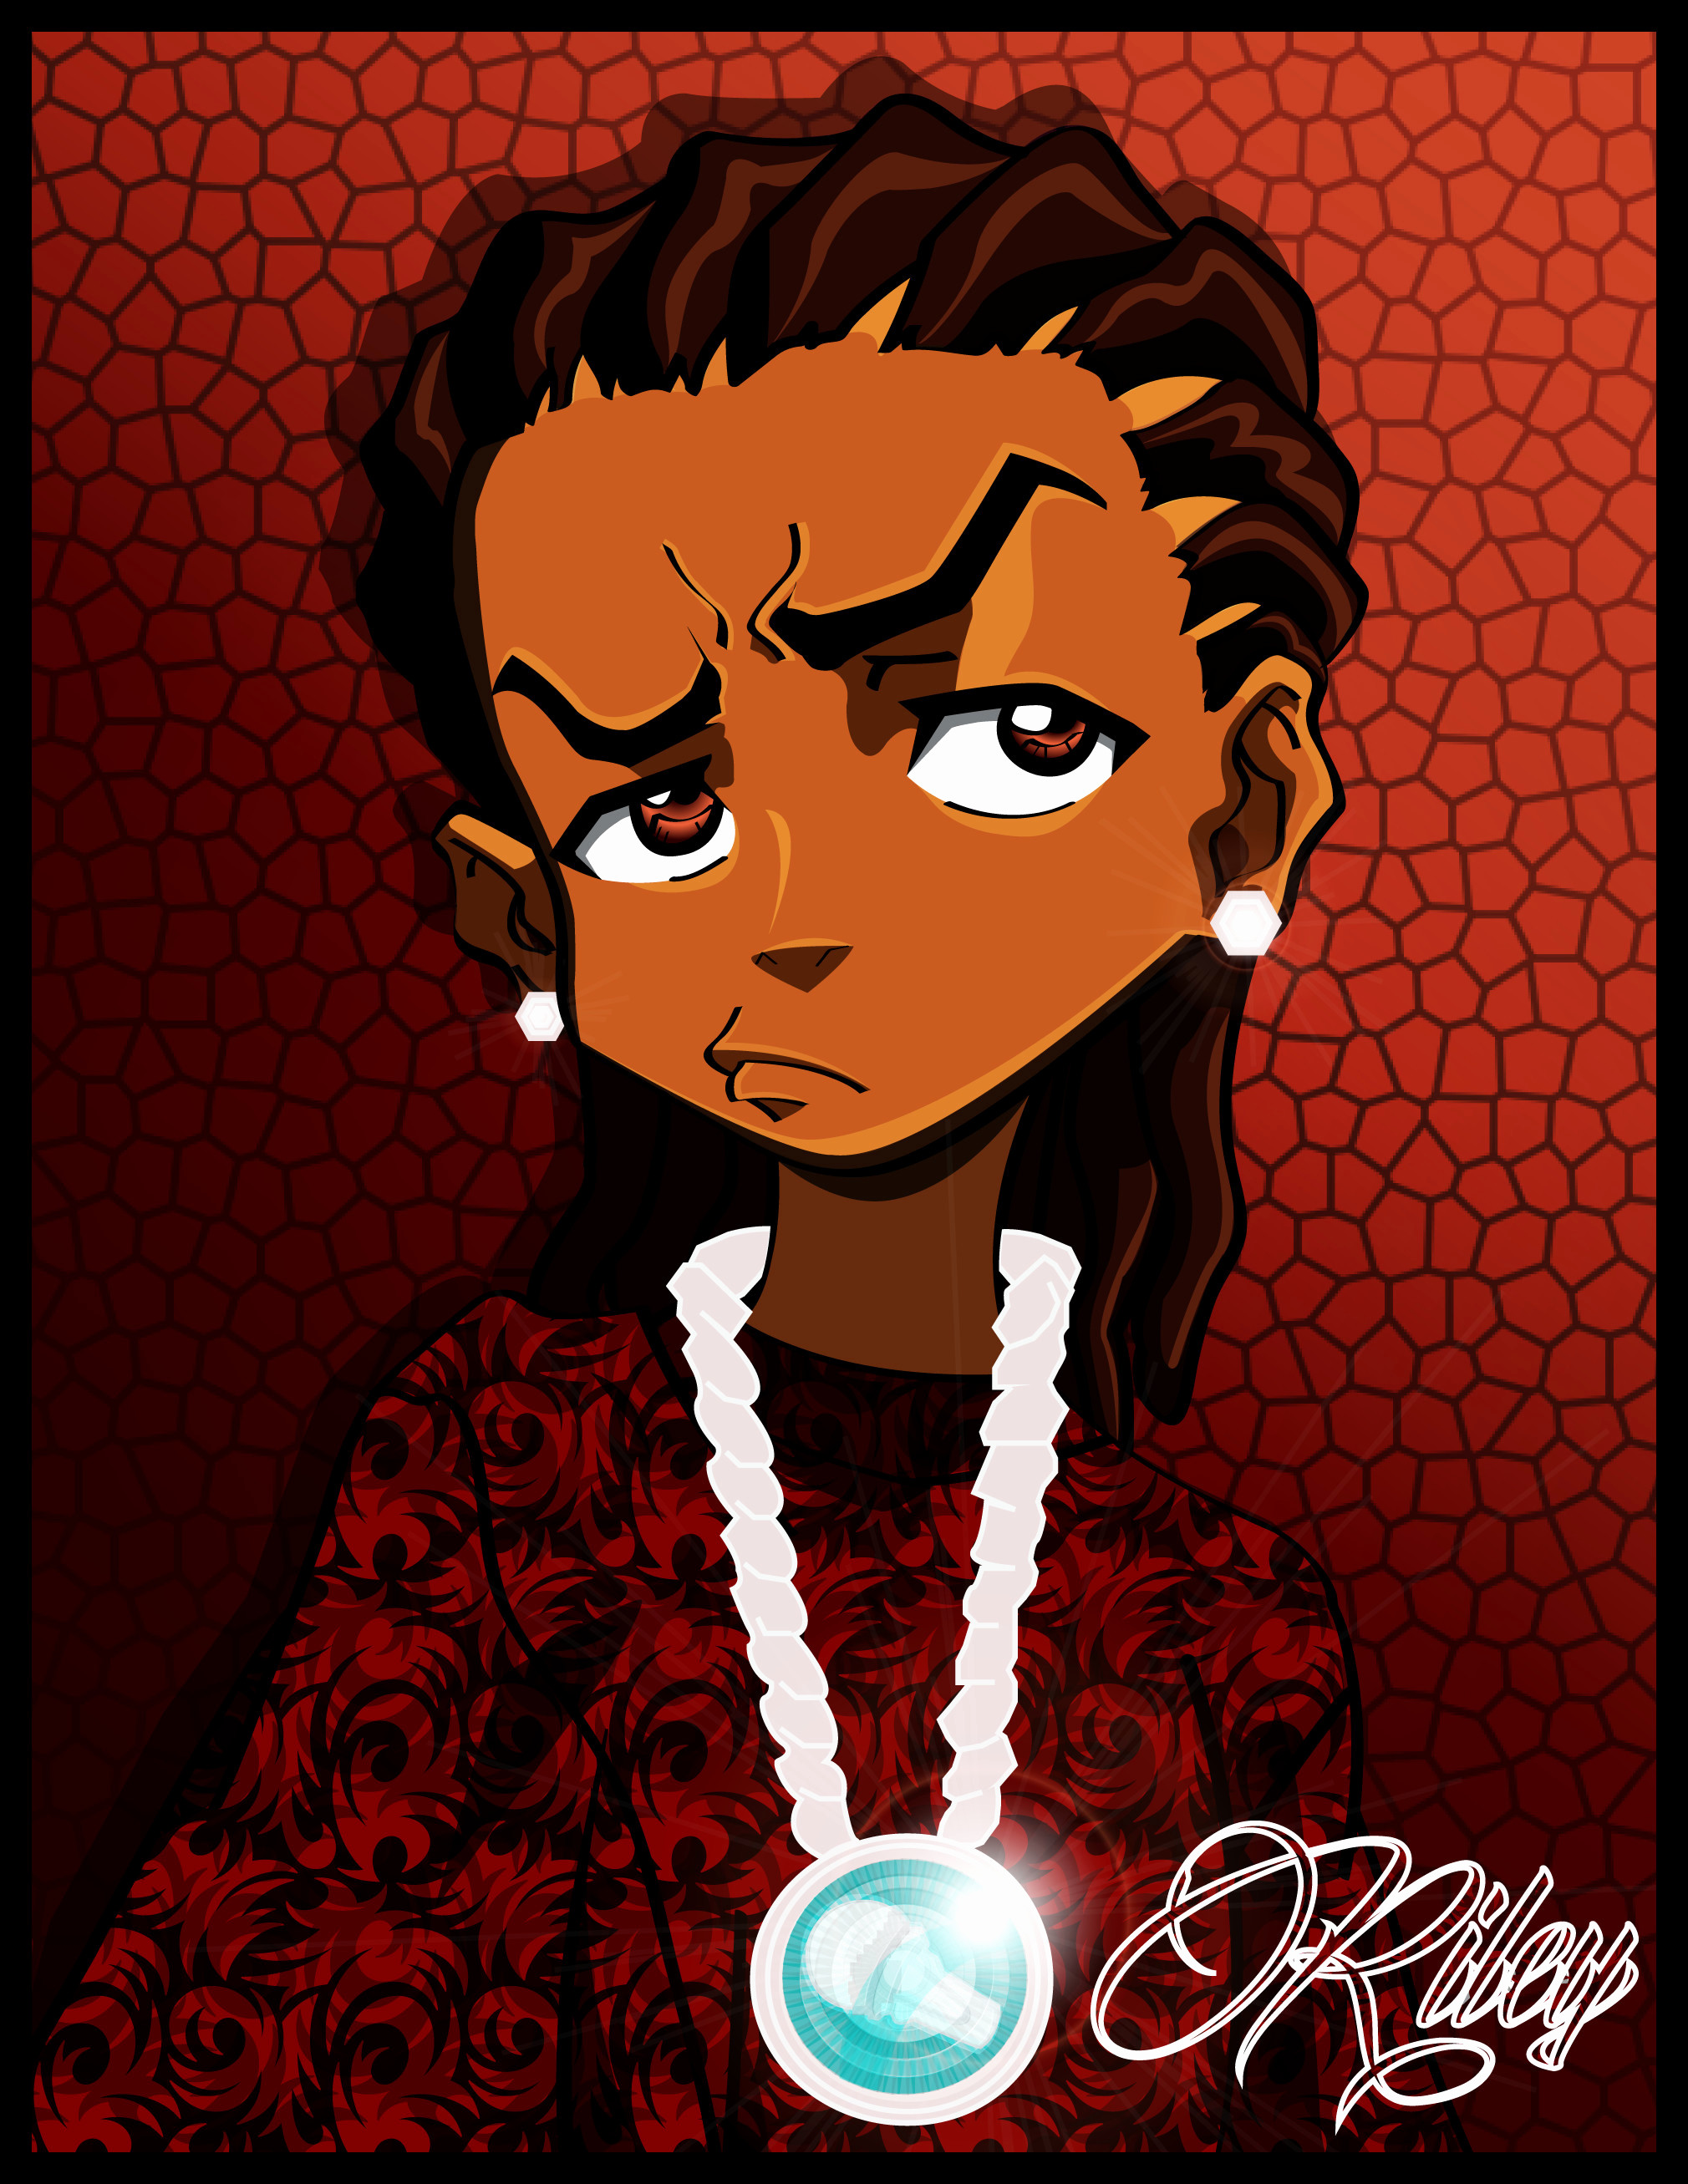 Res: 2020x2614, Boondocks Wallpaper Awesome Boondocks Wallpaper Huey and Riley 60 Images